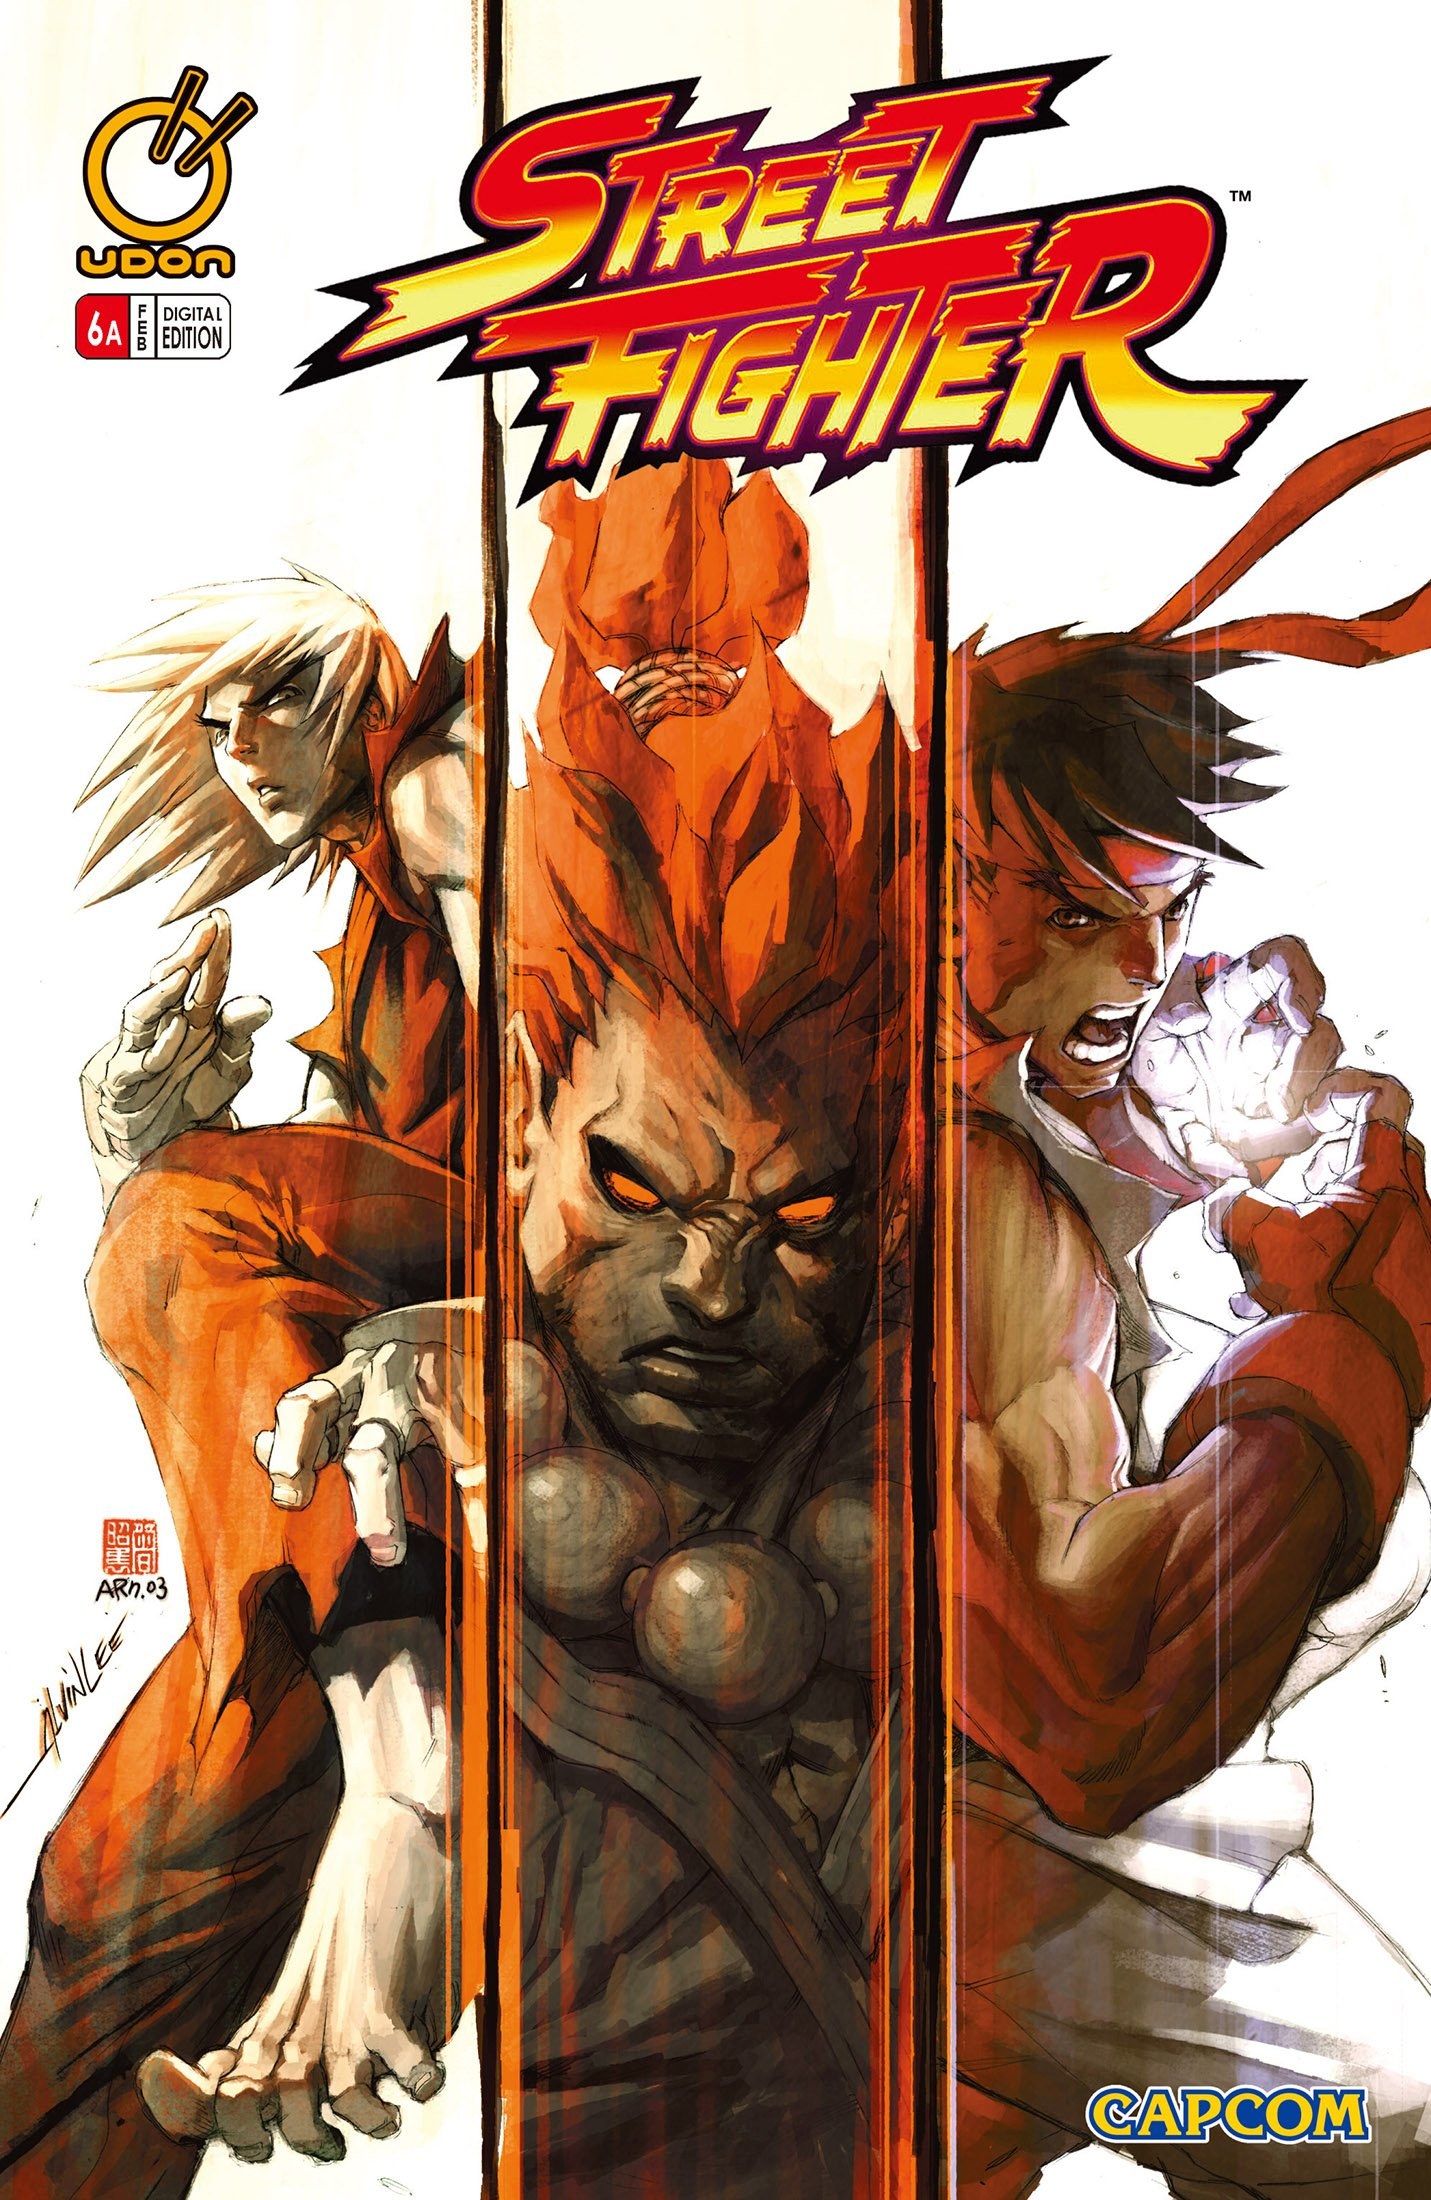 Street Fighter Vol.1 006 (February 2004) (cover a)